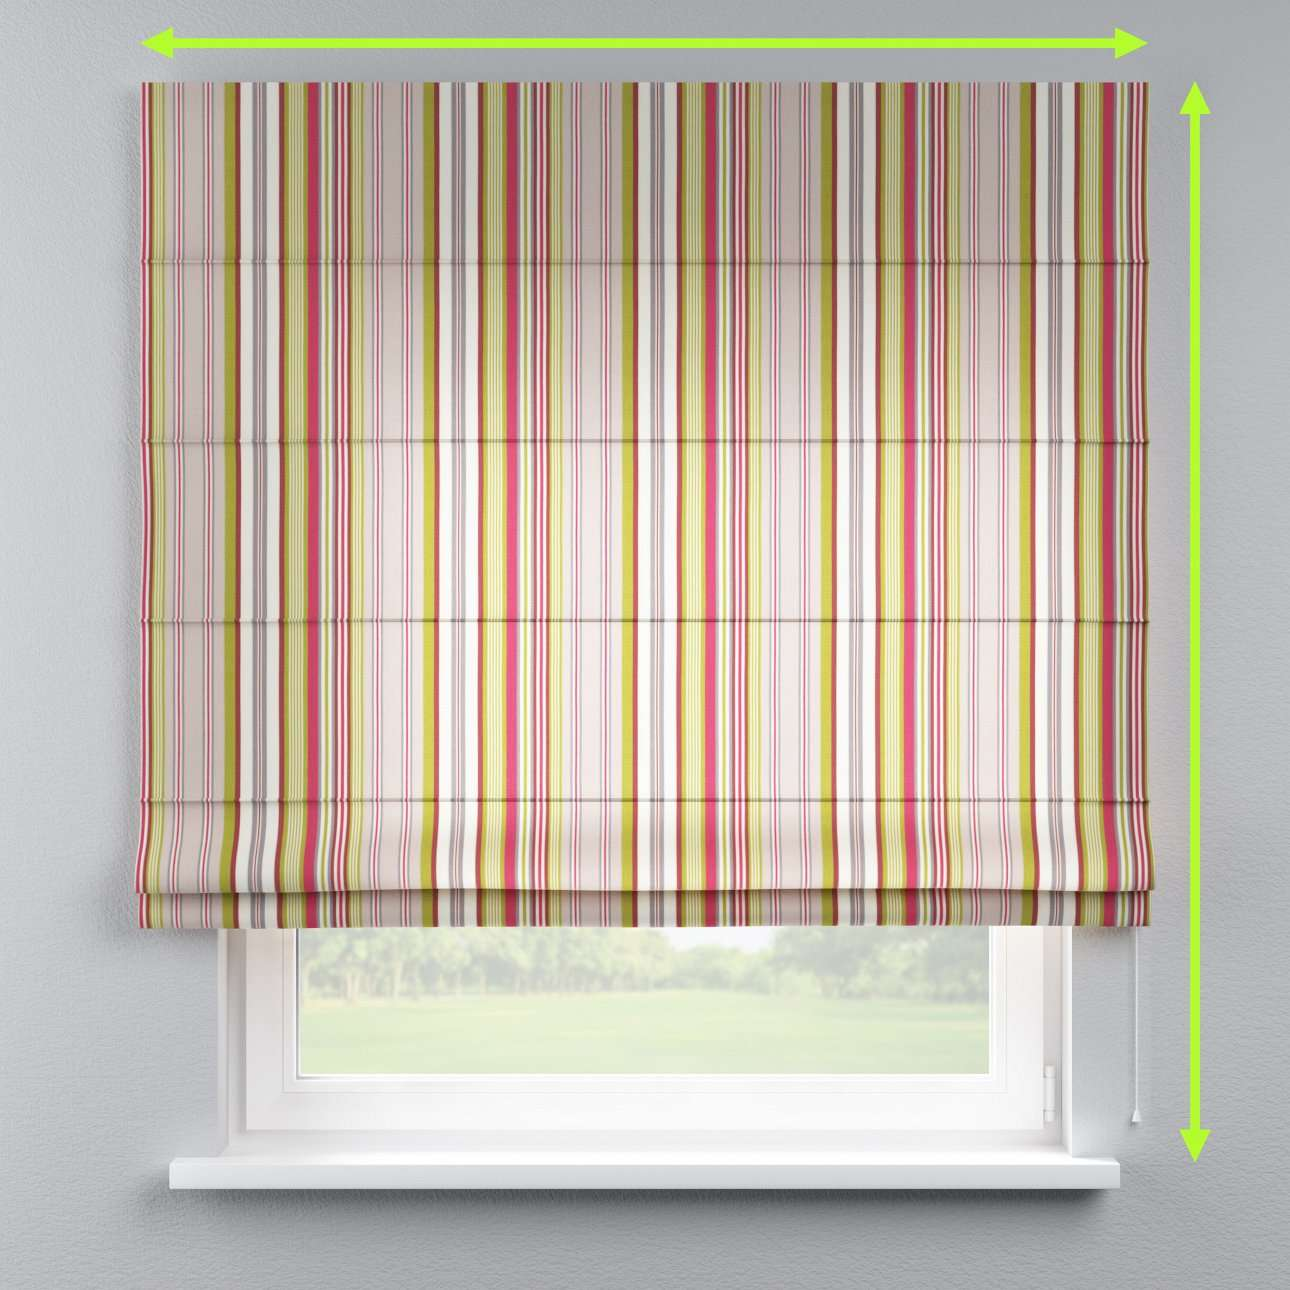 Capri roman blind in collection Flowers, fabric: 311-16